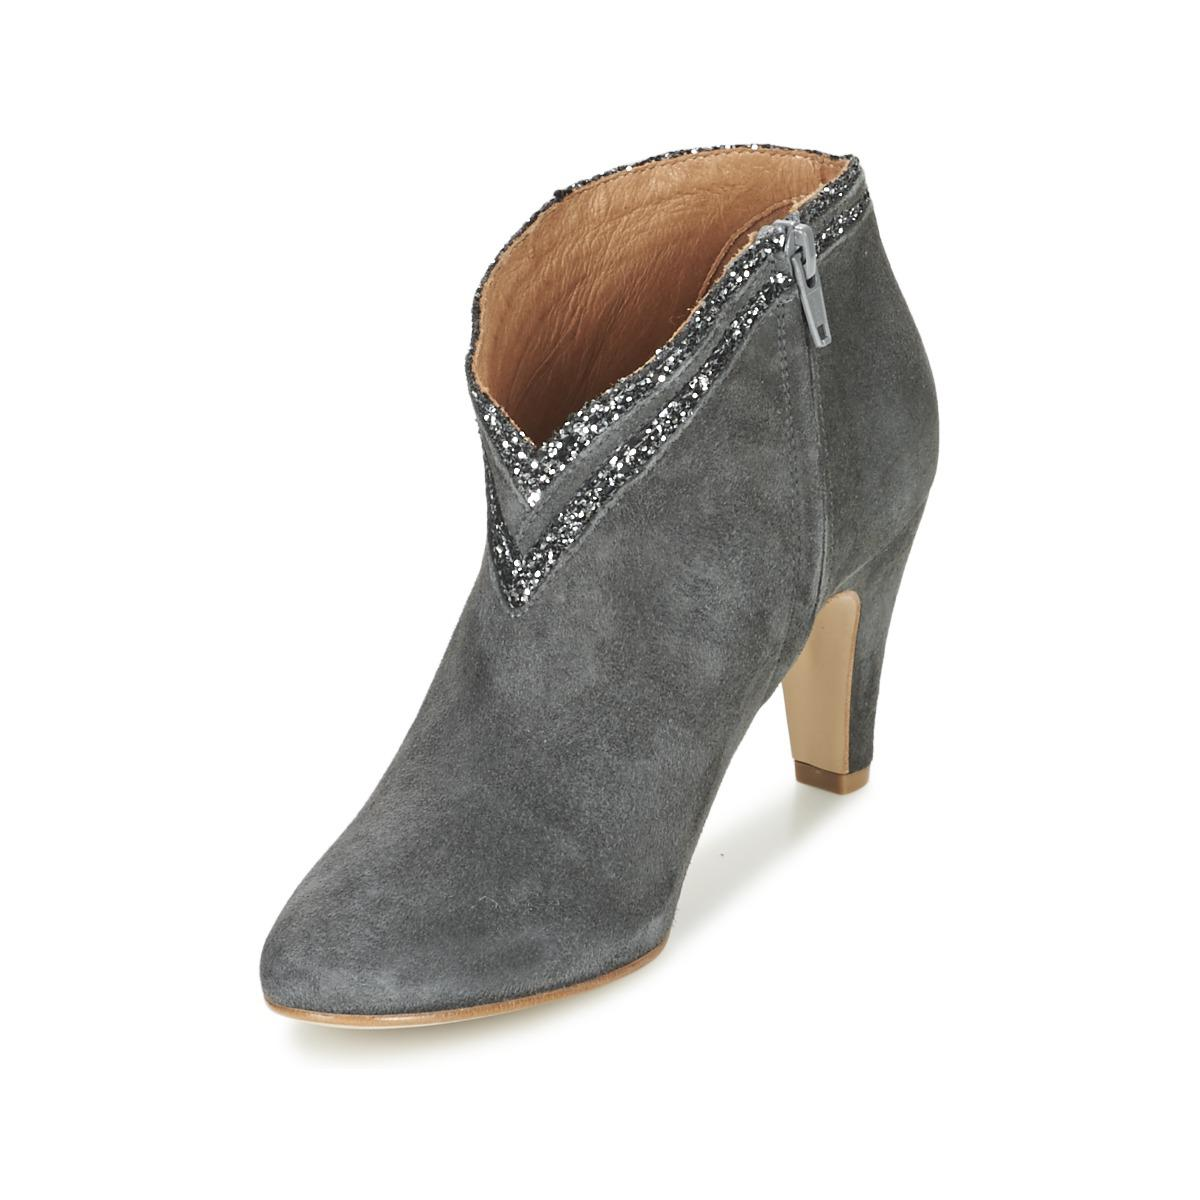 Petite Mendigote Leather Granier Women's Low Ankle Boots In Grey in Grey